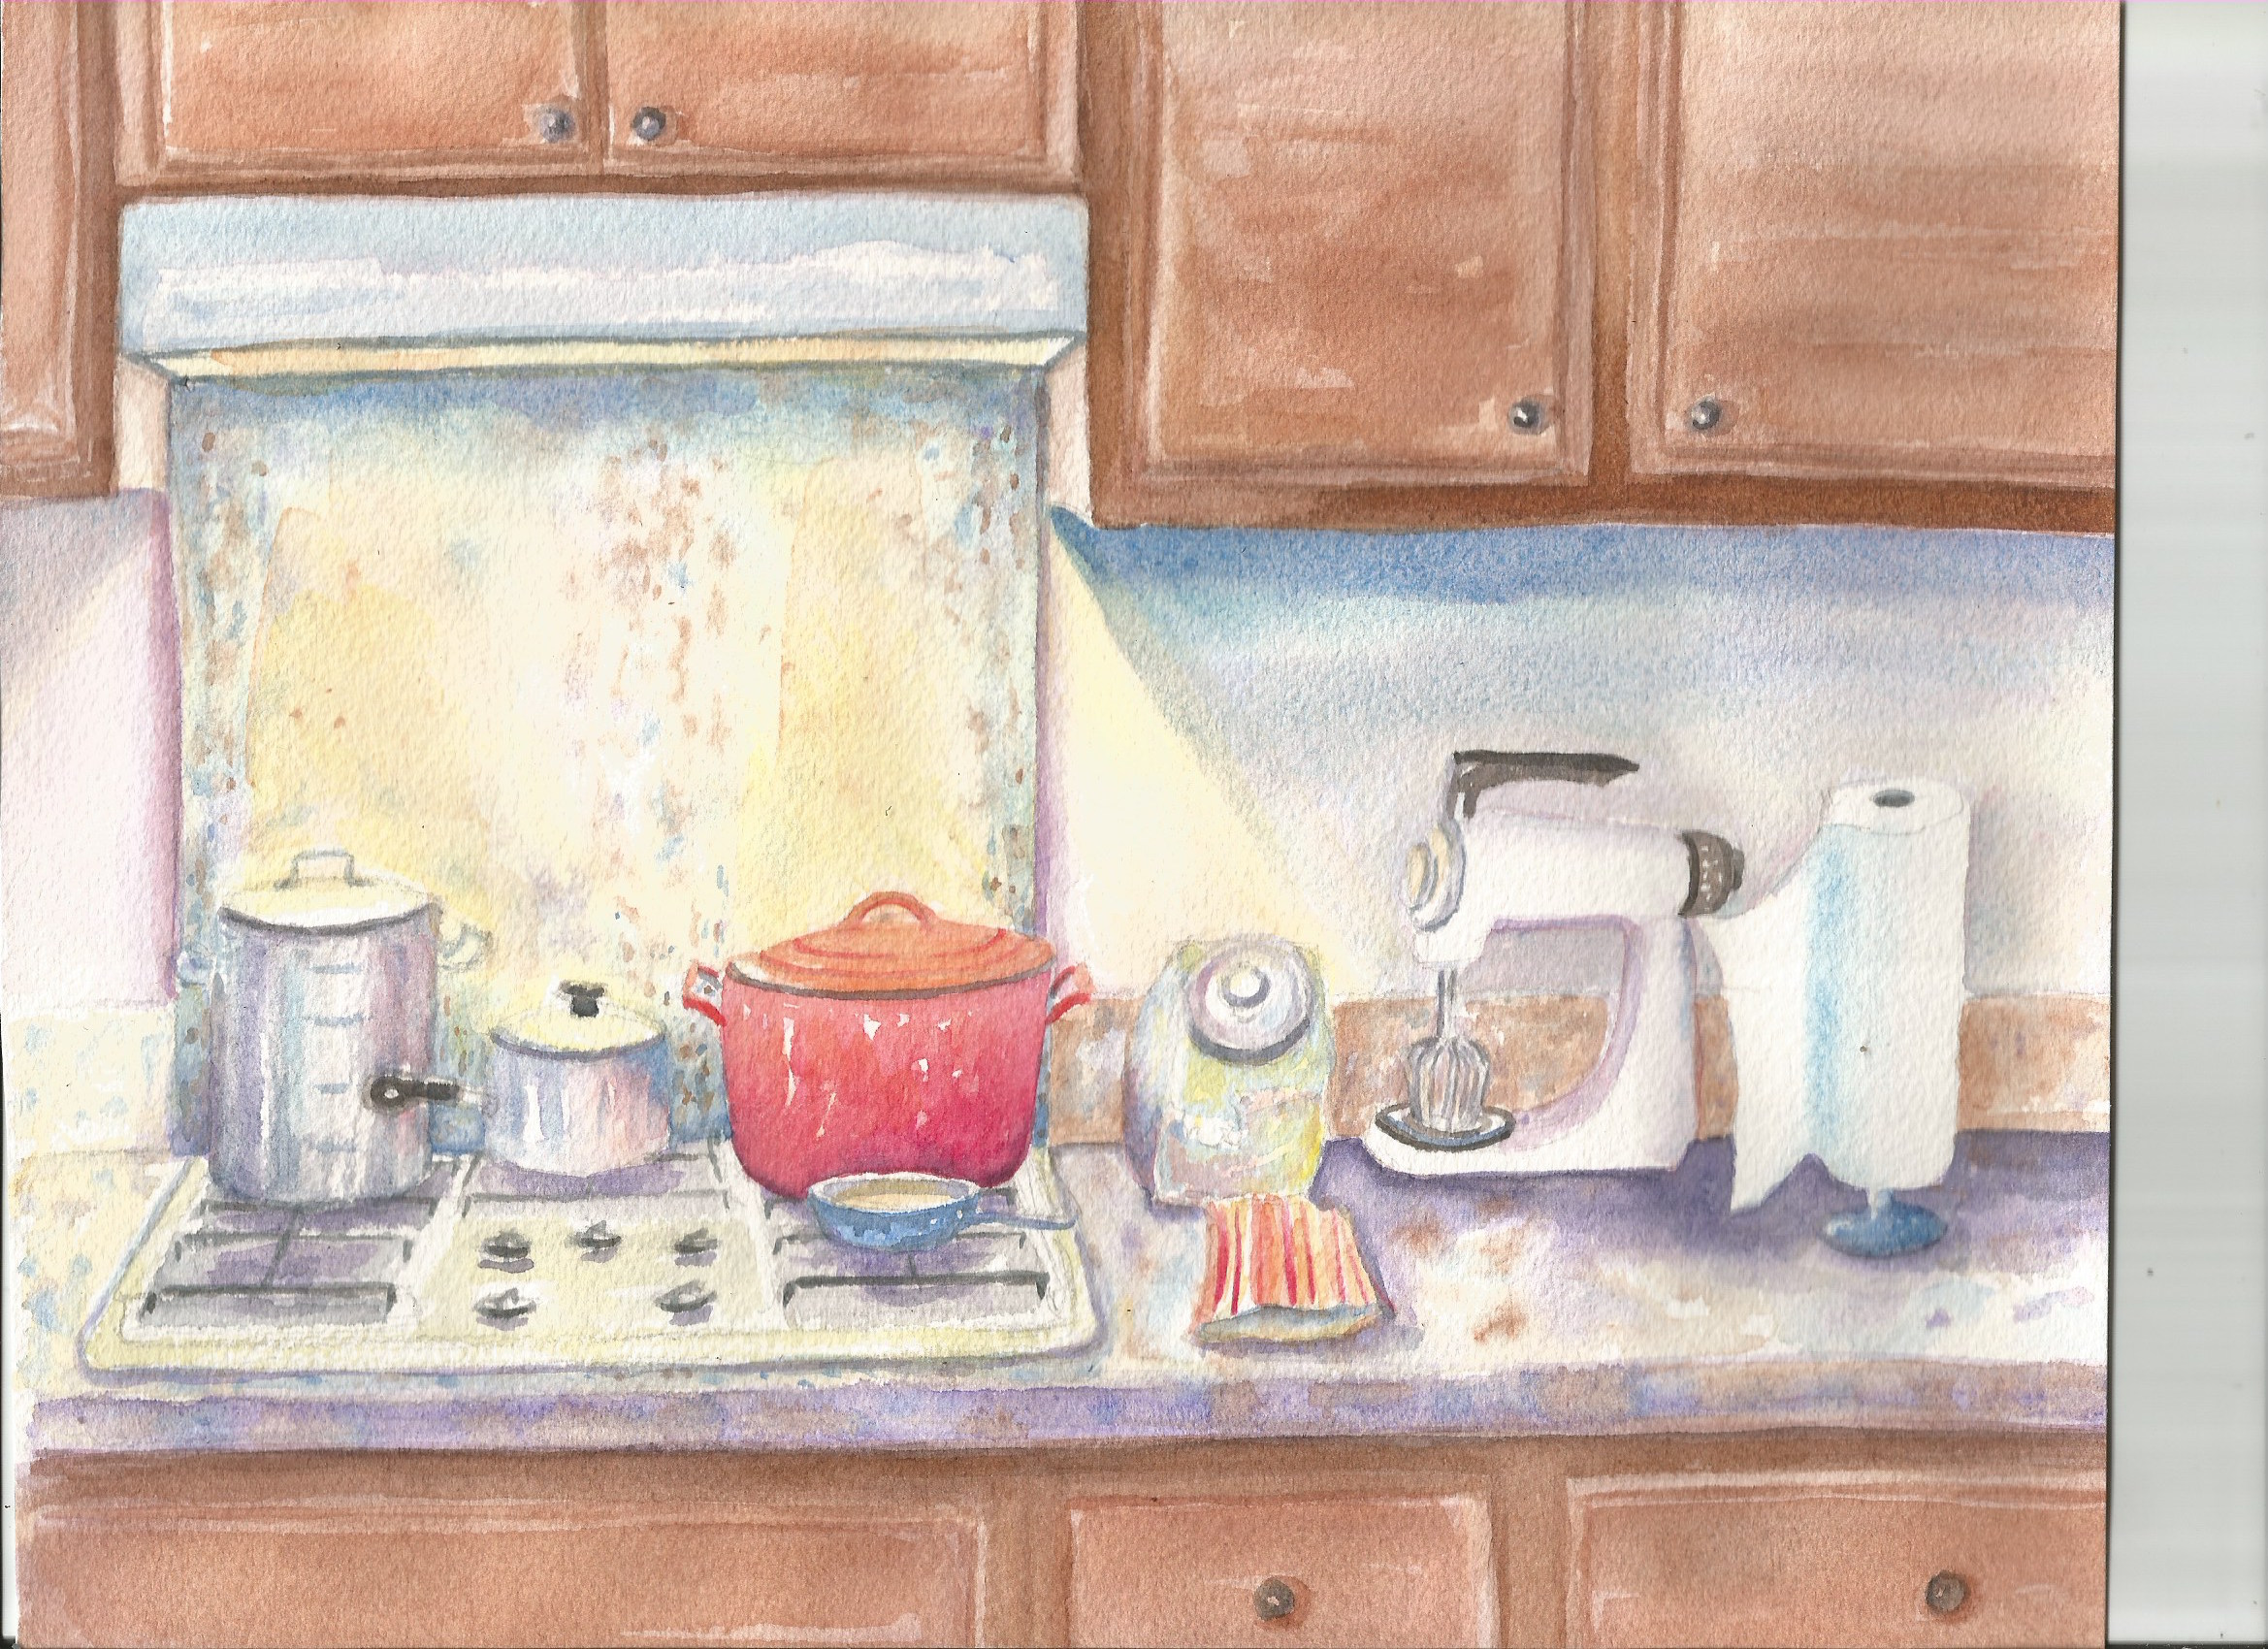 In class you will learn all the basics so you can paint what you see around you where ever you are! I painted this in my kitchen late one night.